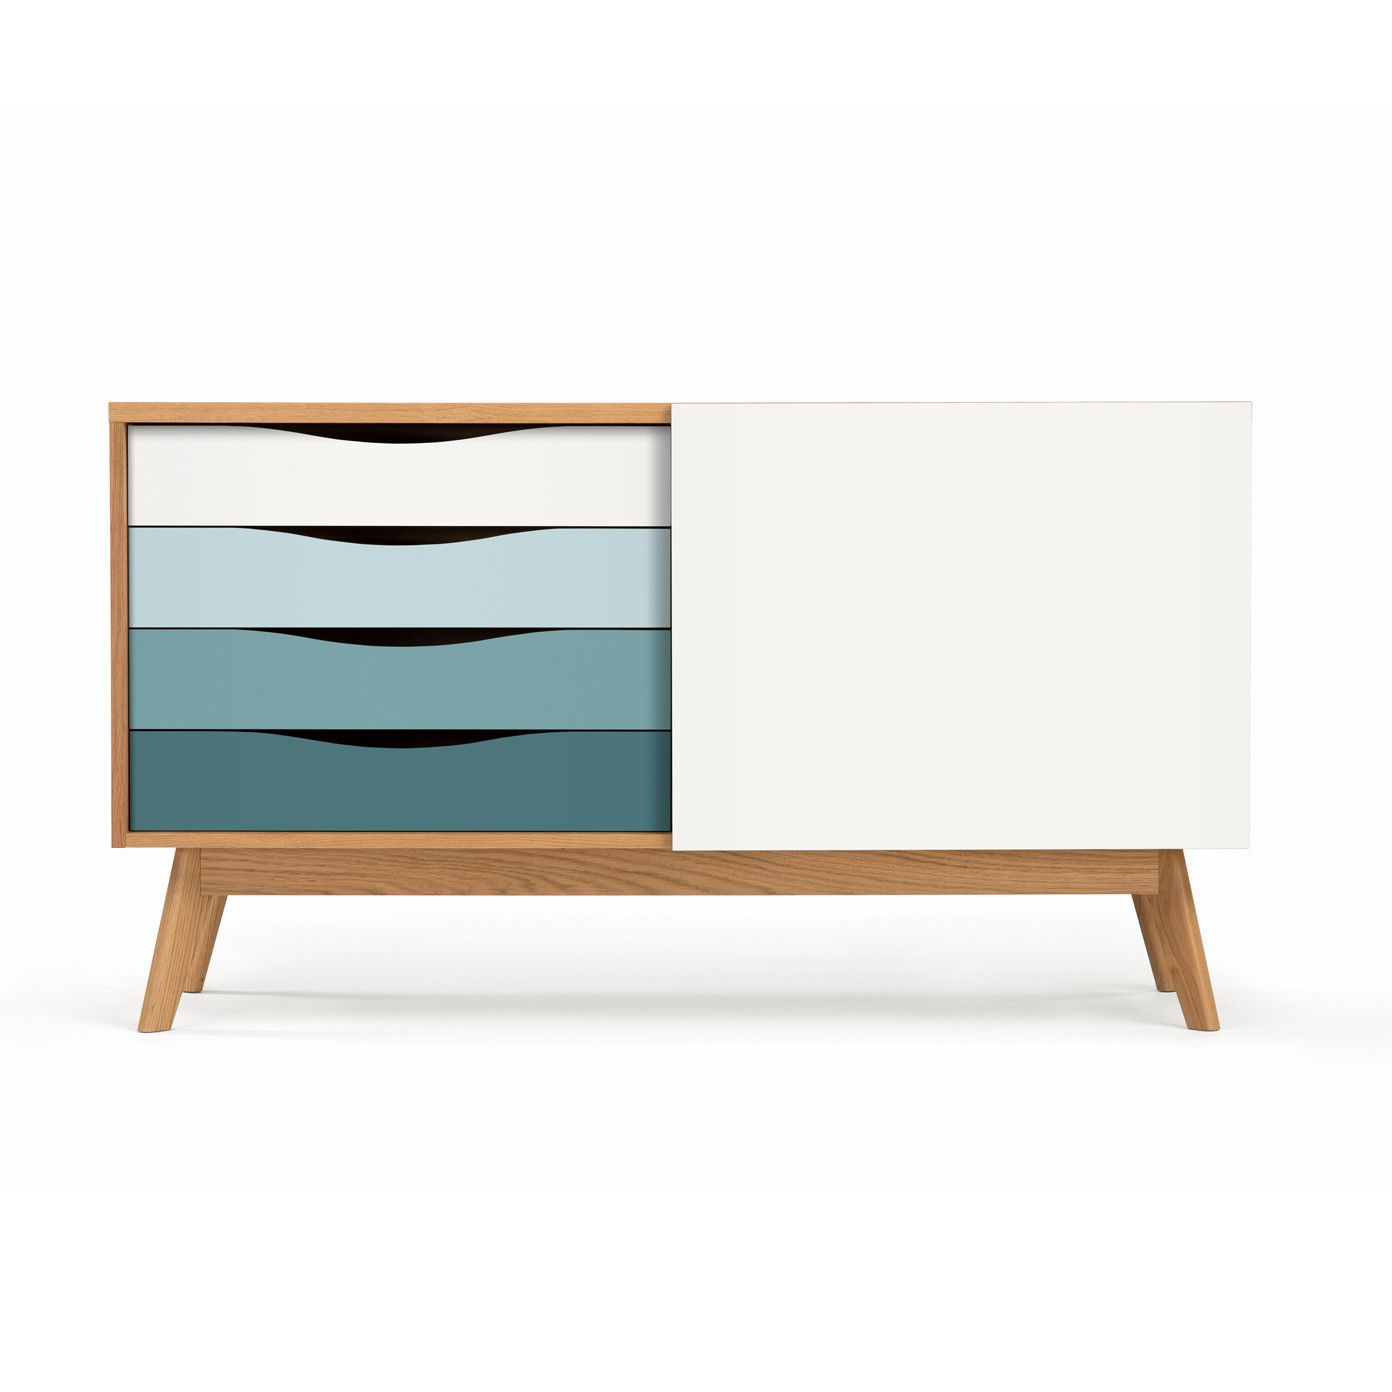 Designer Möbel Within 2019 Corrugated Natural 4 Drawer Sideboards (View 12 of 20)